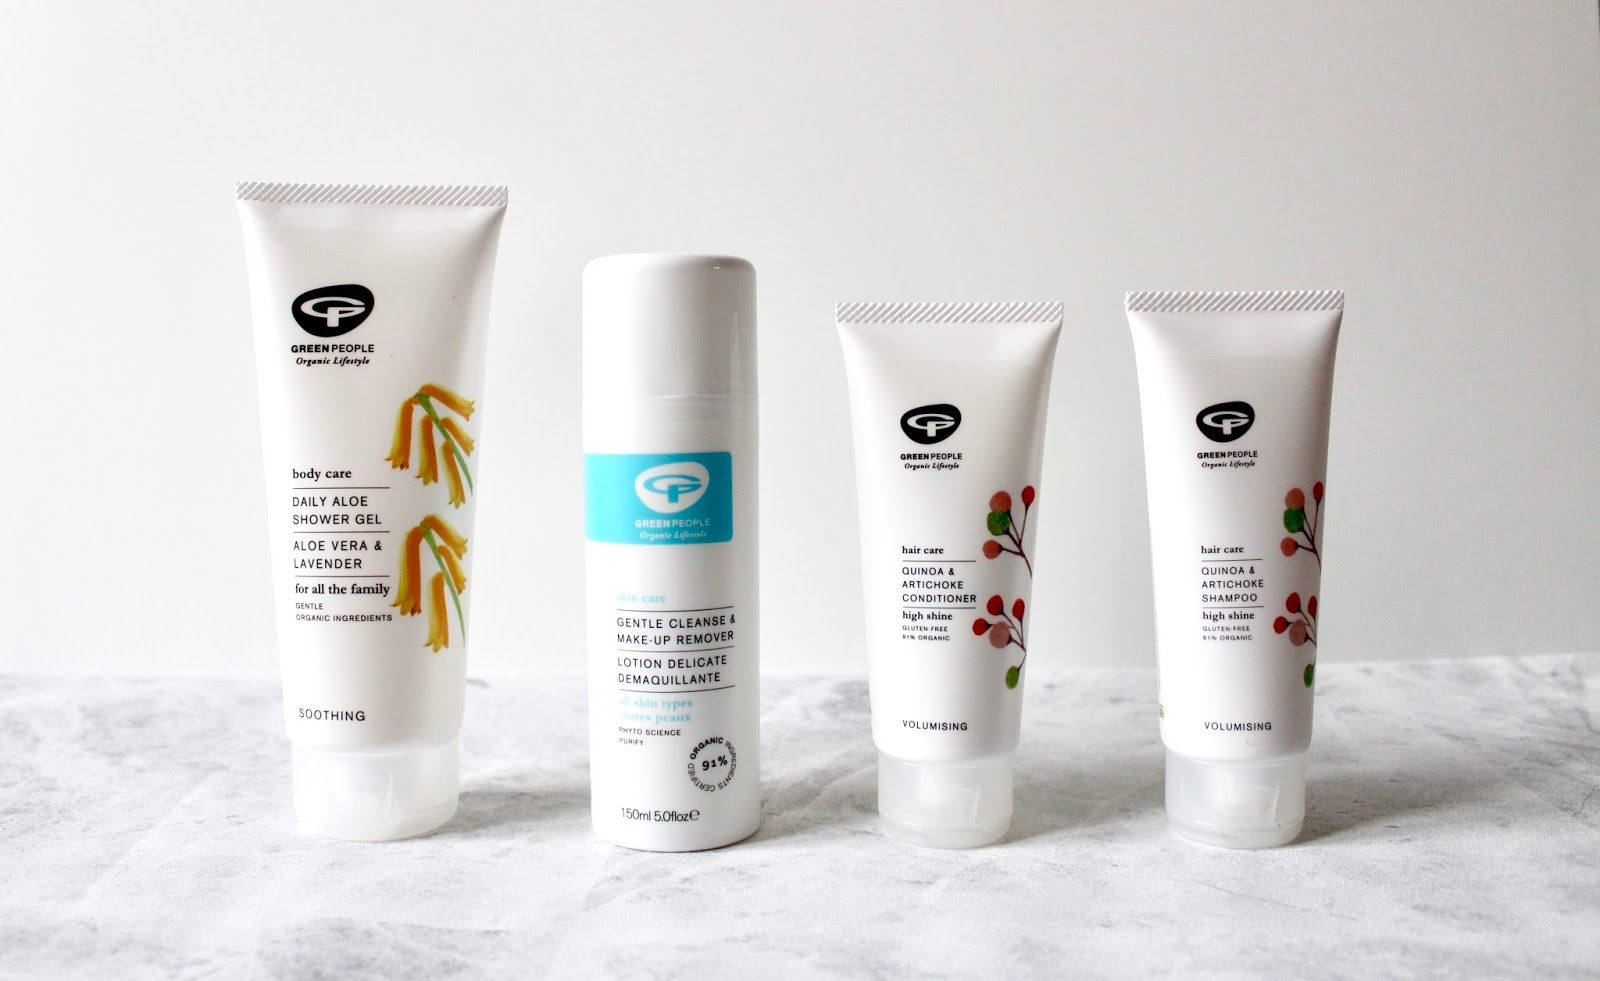 Vegan Skincare: Green People